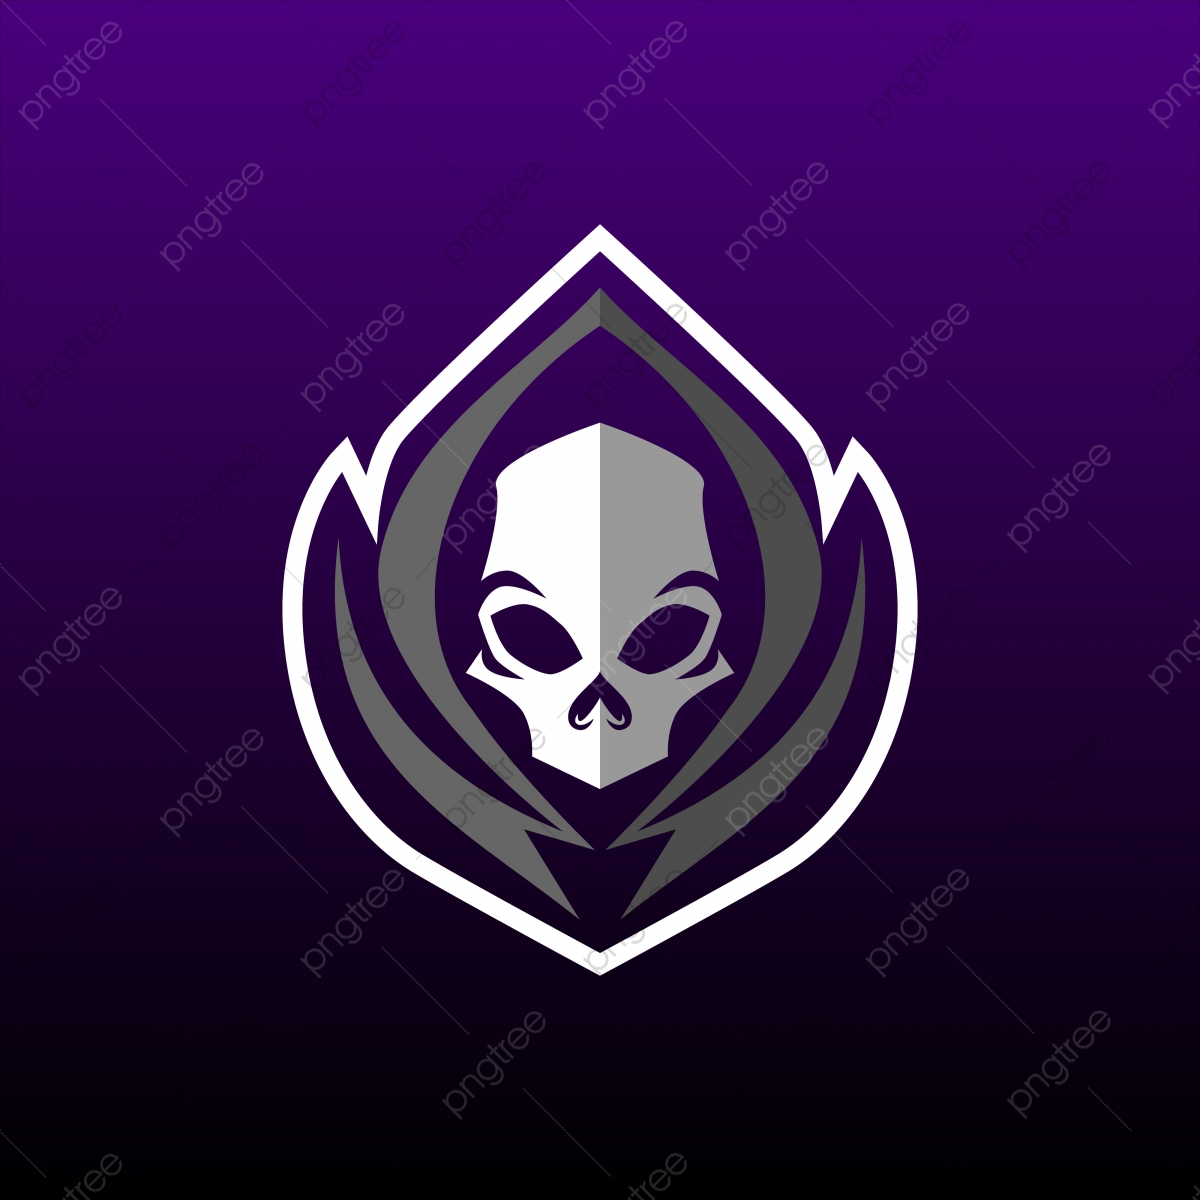 Grim Reaper Gaming Mascot Logo Design Logo Icons Sport Character Png And Vector With Transparent Background For Free Download